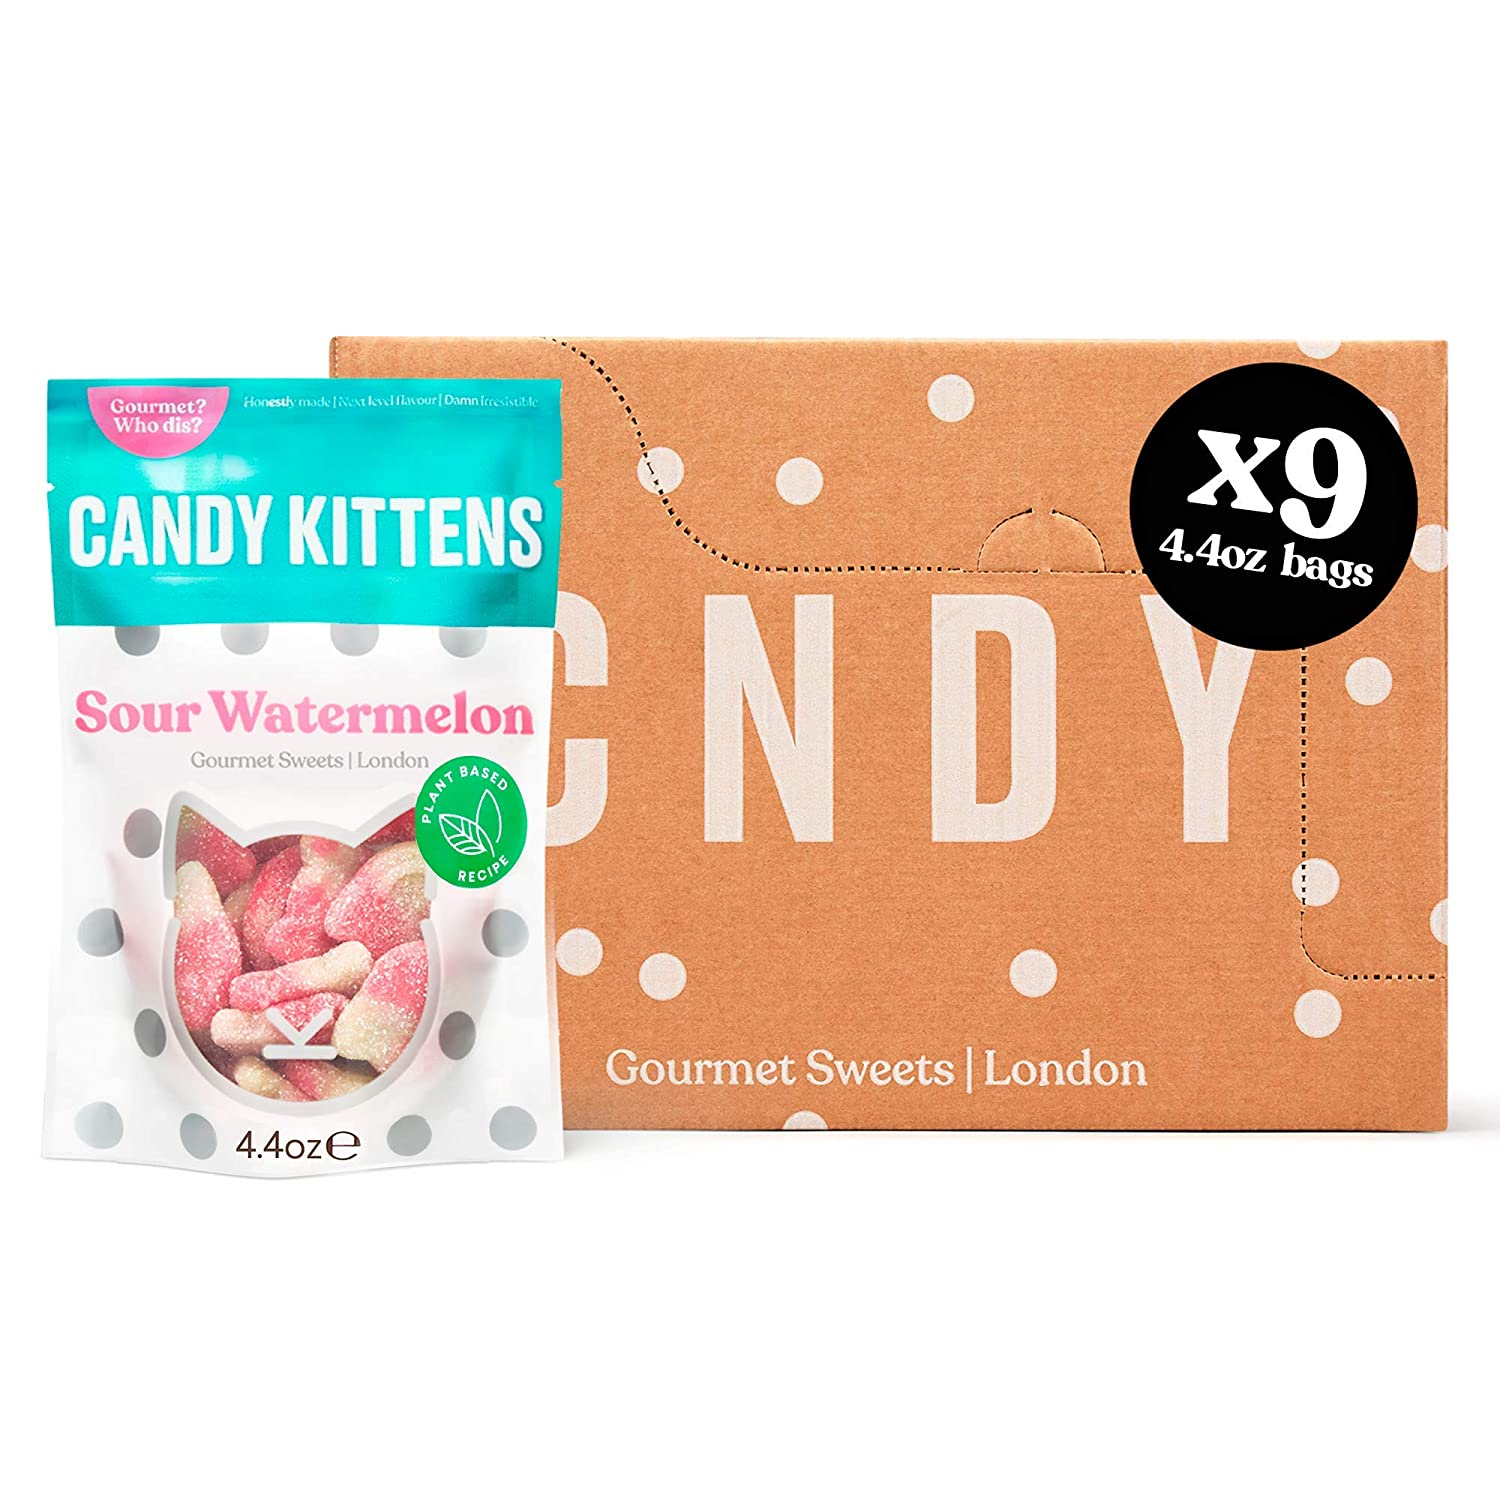 Candy Kittens Sour 2021 Watermelon Plant-Based Oil Free - Palm Max 80% OFF